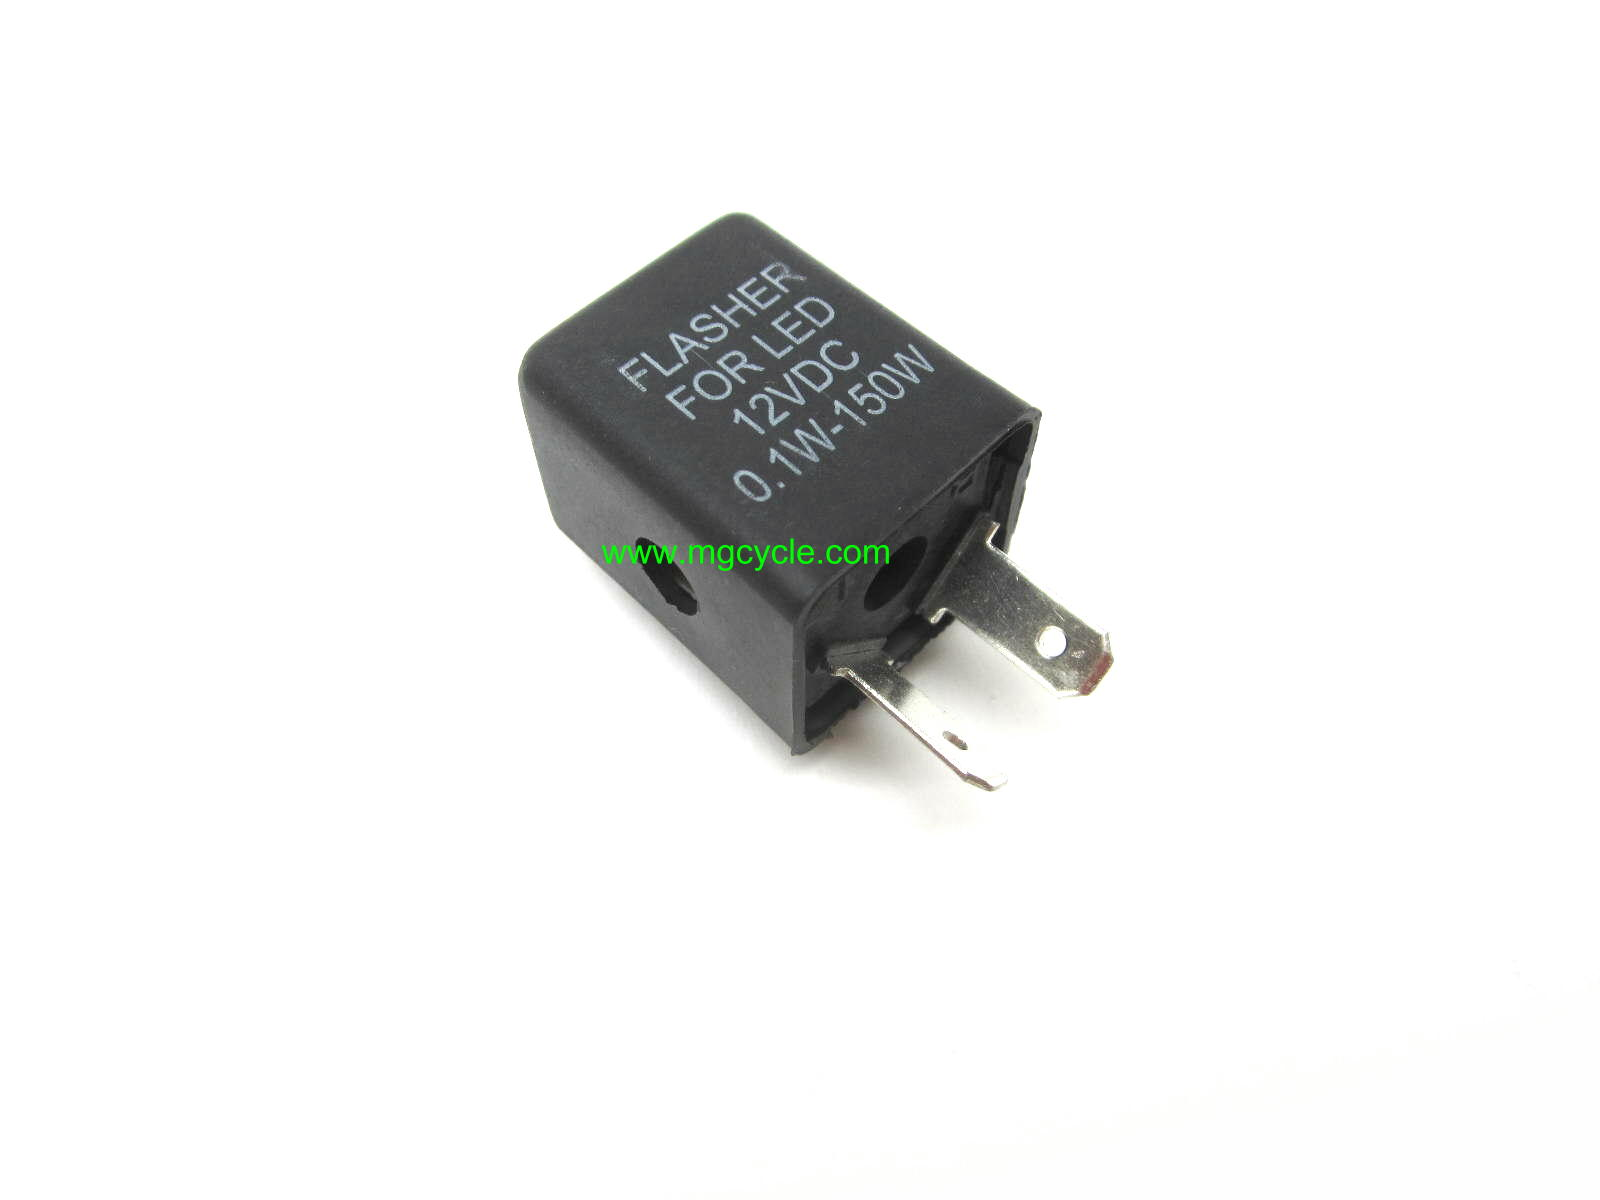 Turn signal flasher relay 2 terminal, works w/ LED turn signals